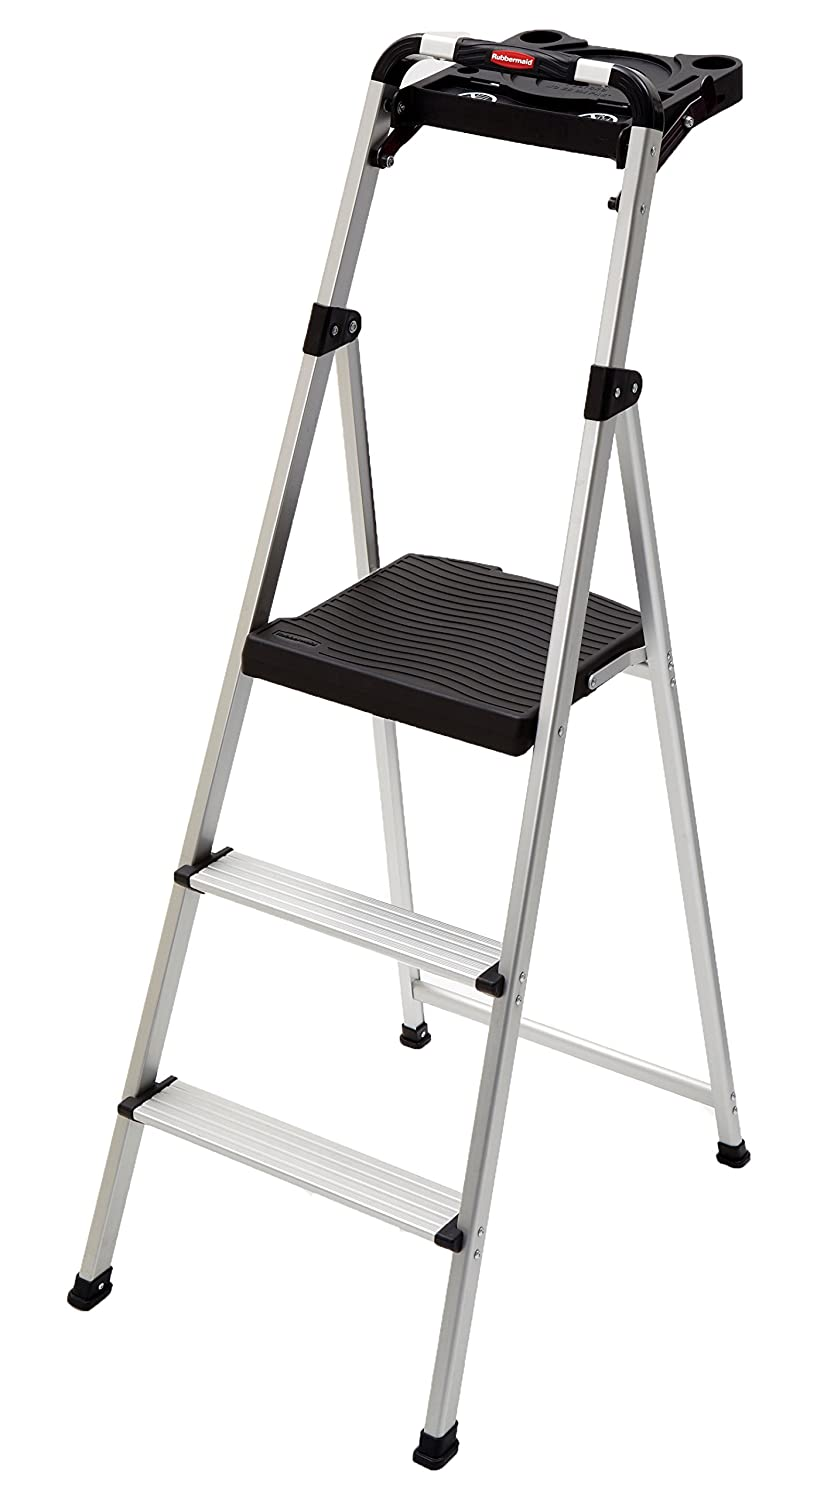 Rubbermaid RM-SLA3-T 3-Step Ultra Light Aluminum Step Stool with Project Tray, 225-Pound Capacity, Grey Finish Tricam